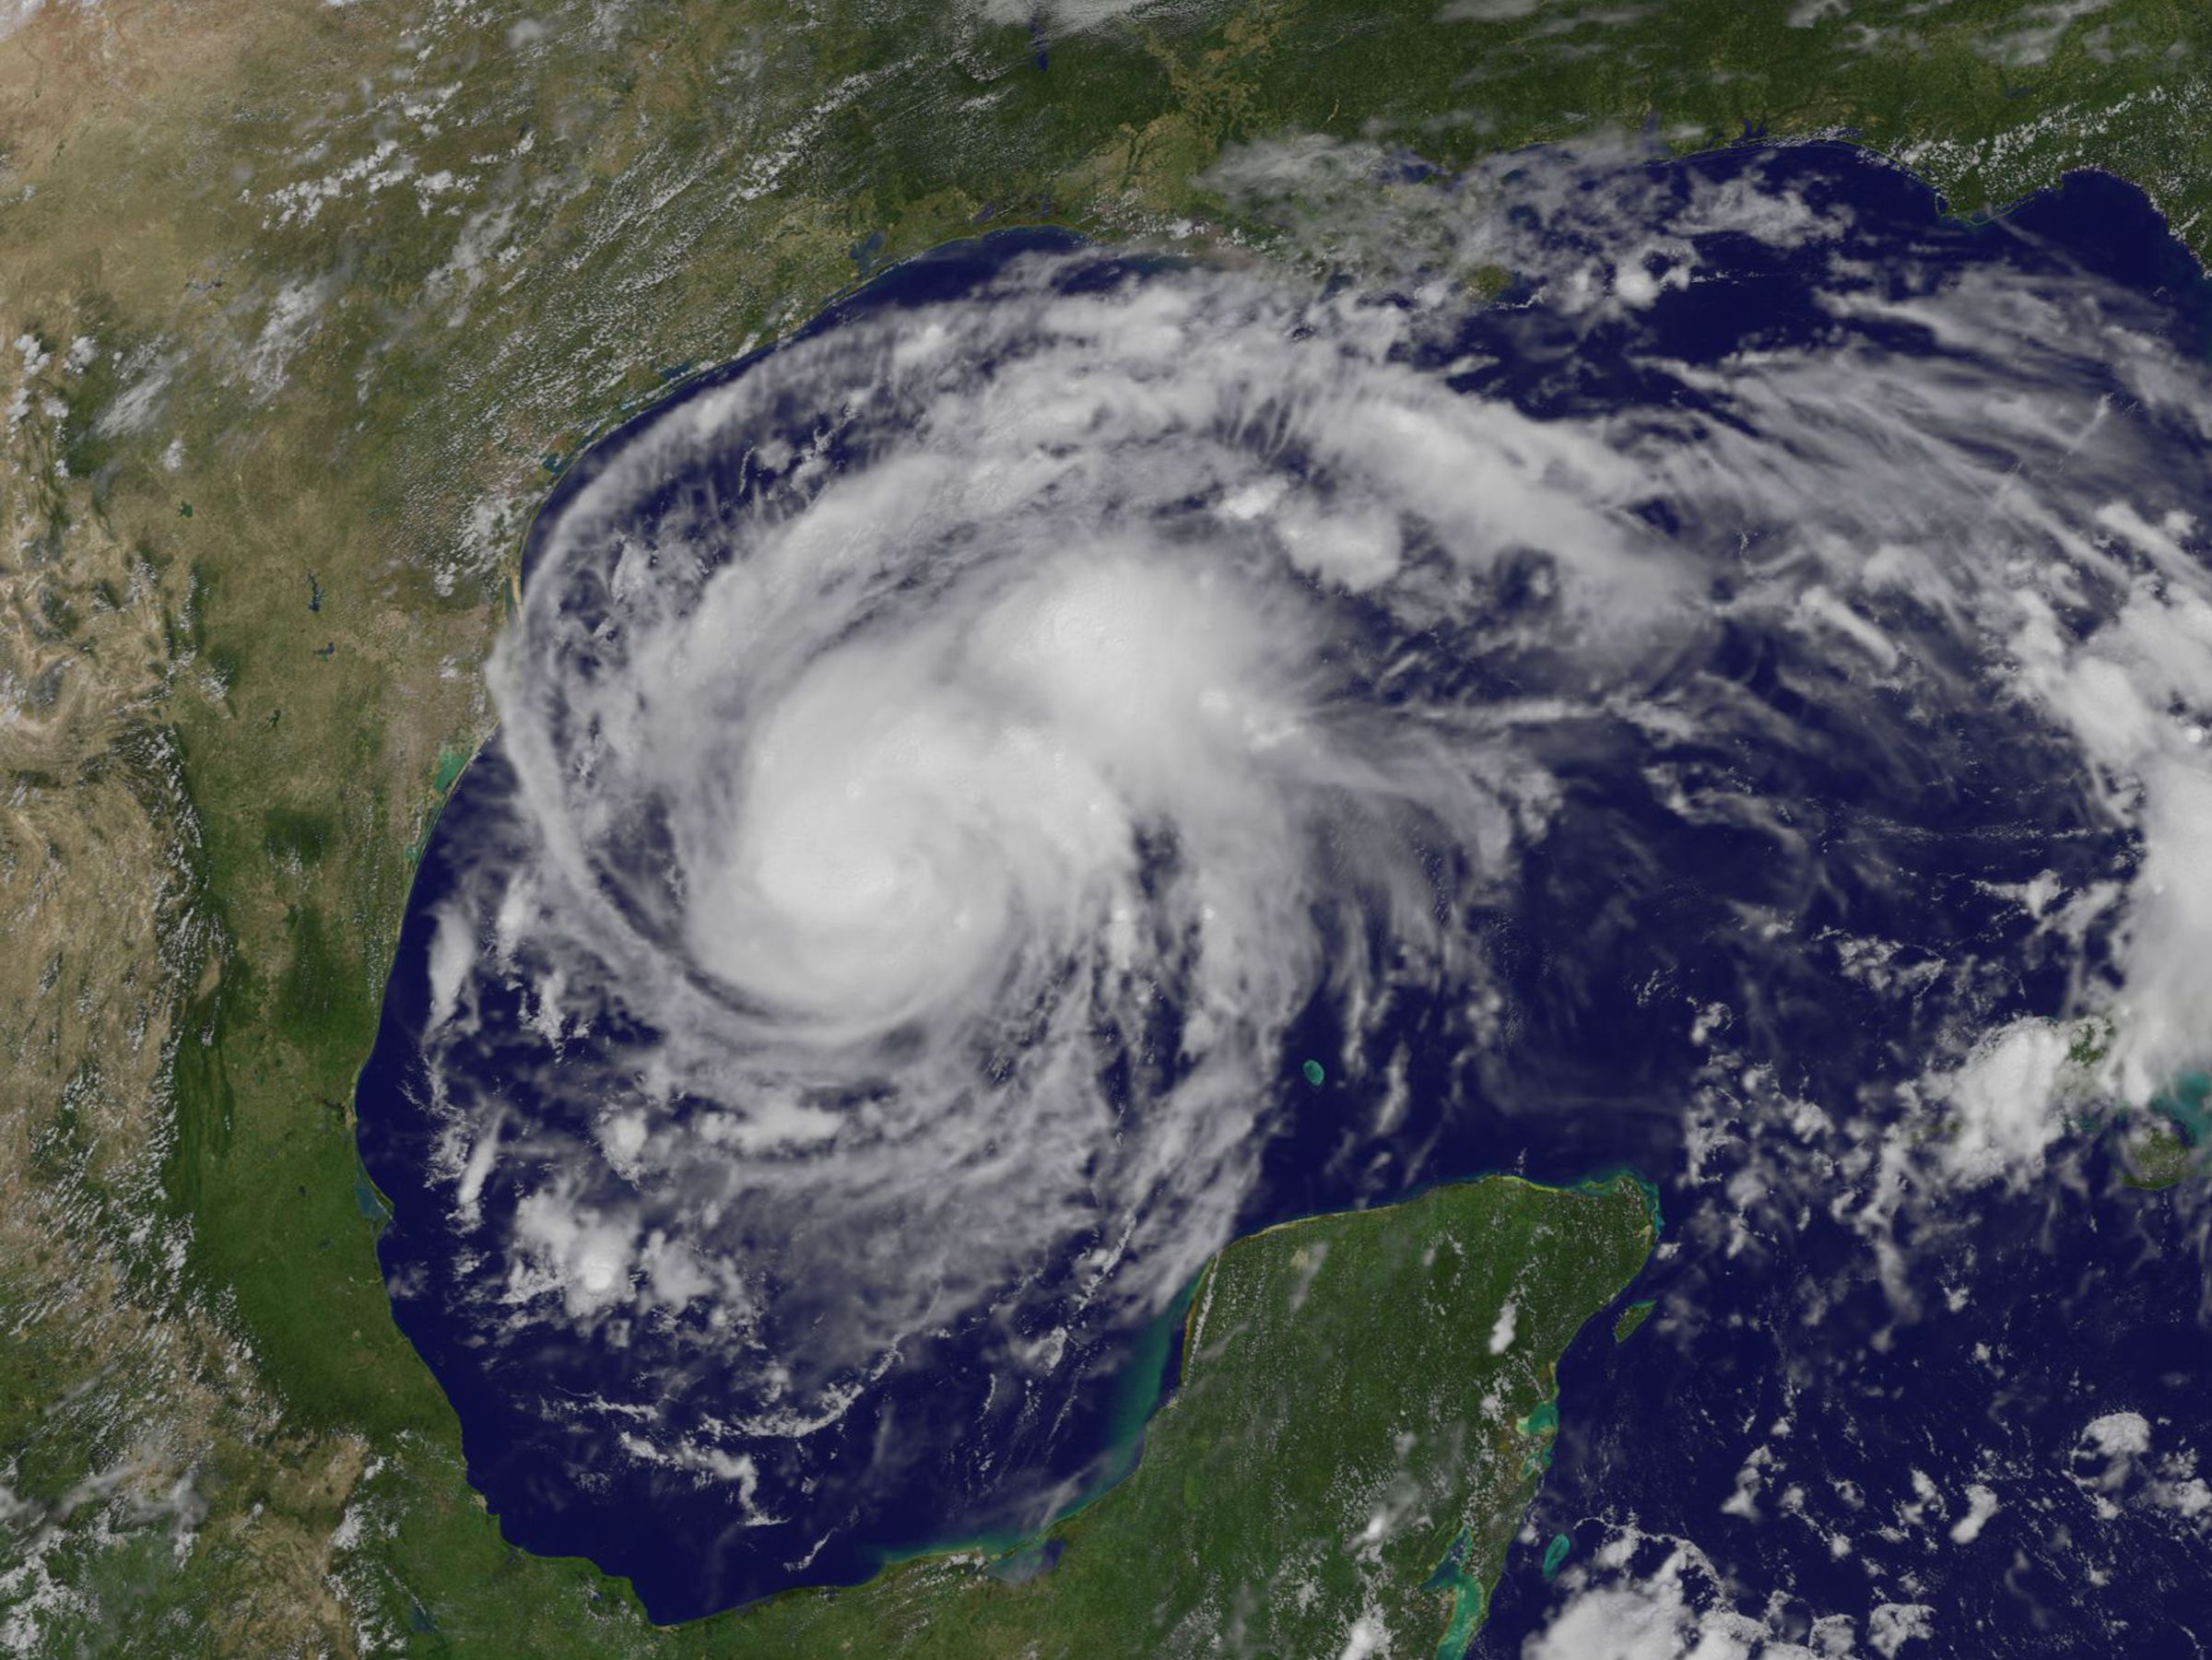 A satellite image of Hurricane Harvey on August 24